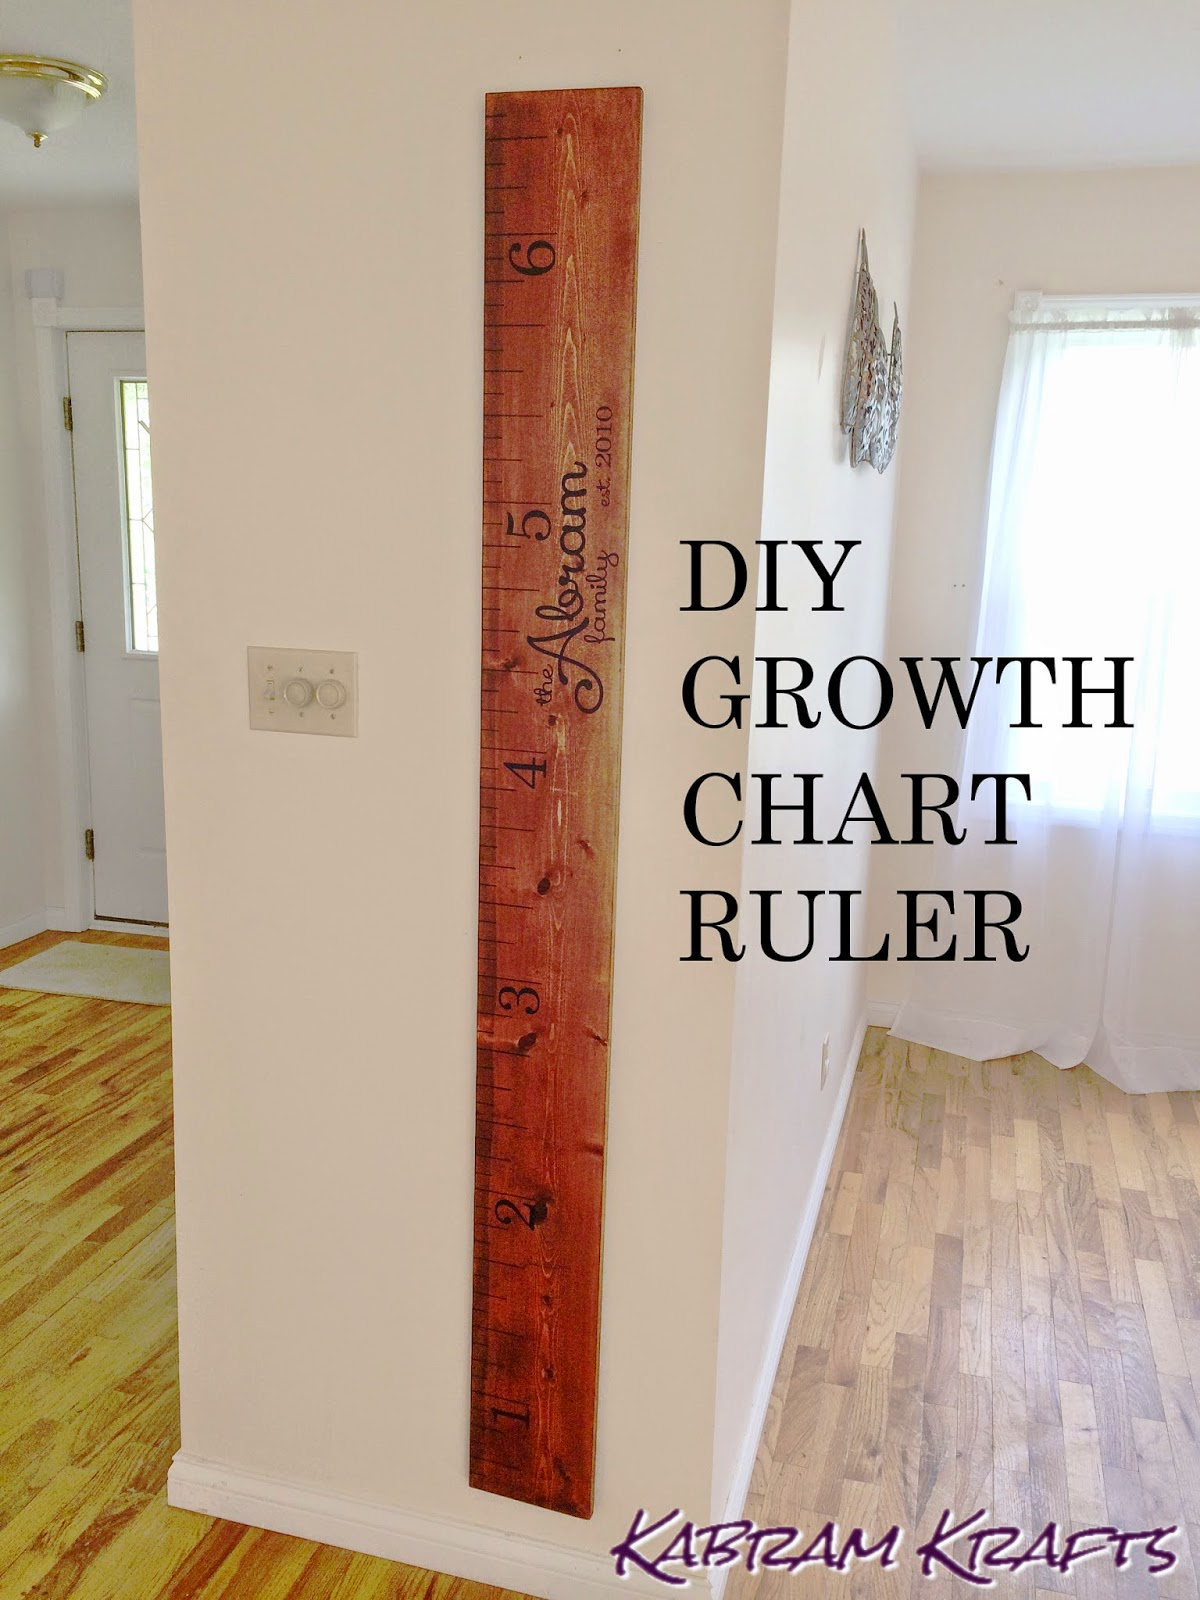 Diy wooden growth ruler chart kabram krafts well this is one of those projects that im sure you have seen if you have spent any time on pinterest despite its ubiquity i wanted to give it a try nvjuhfo Gallery